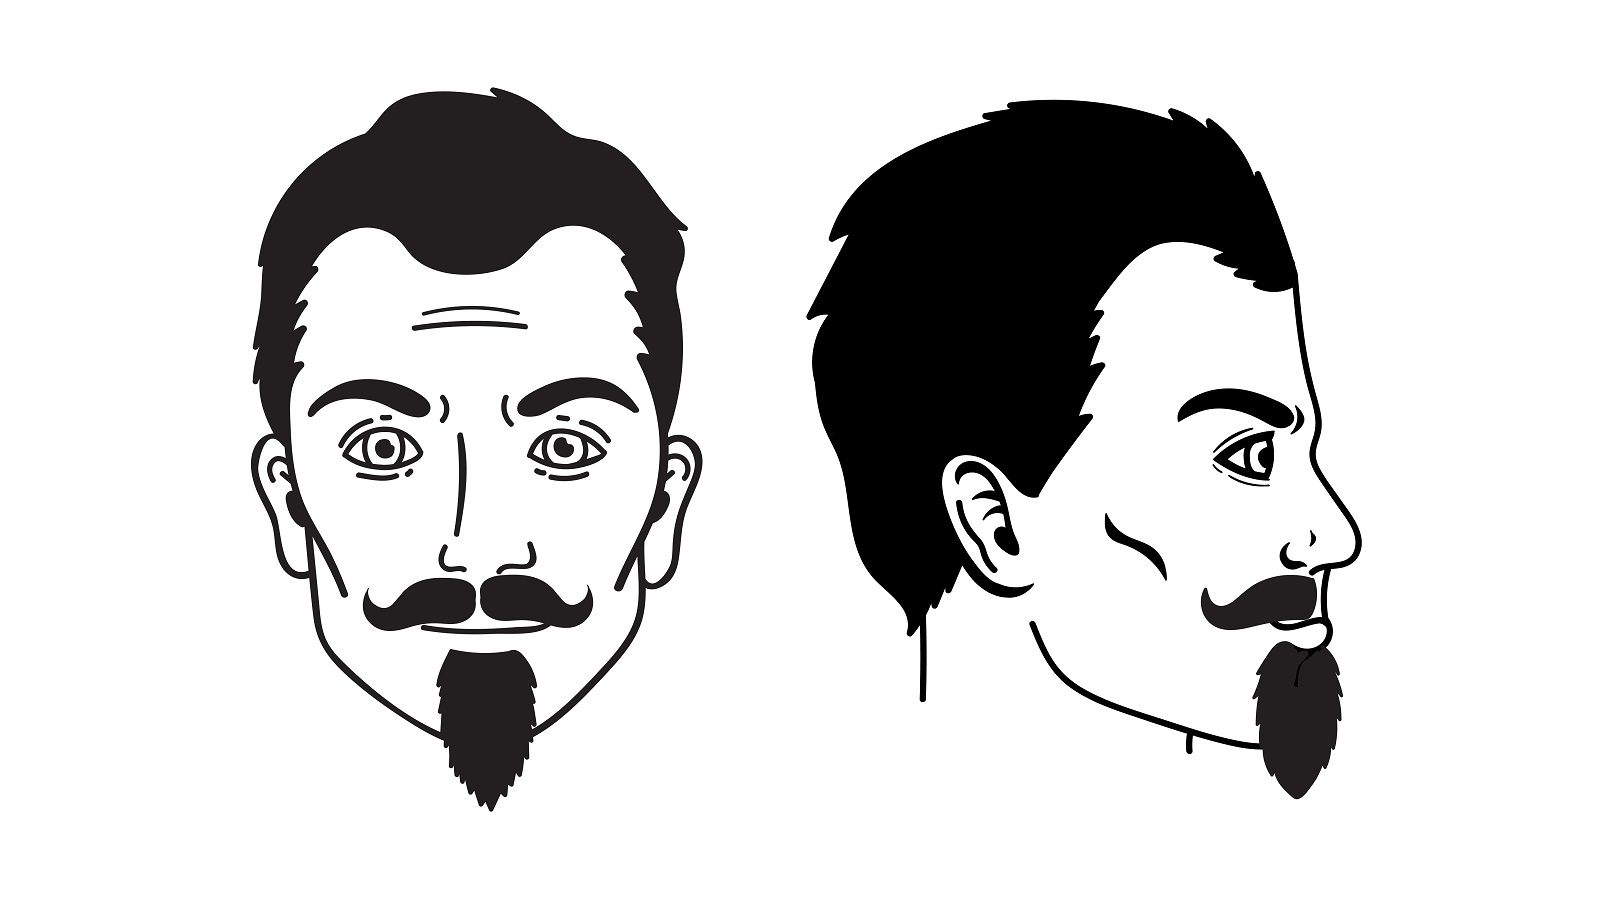 Chin Puff Goatee and Handlebar Mustache , a facial hair style